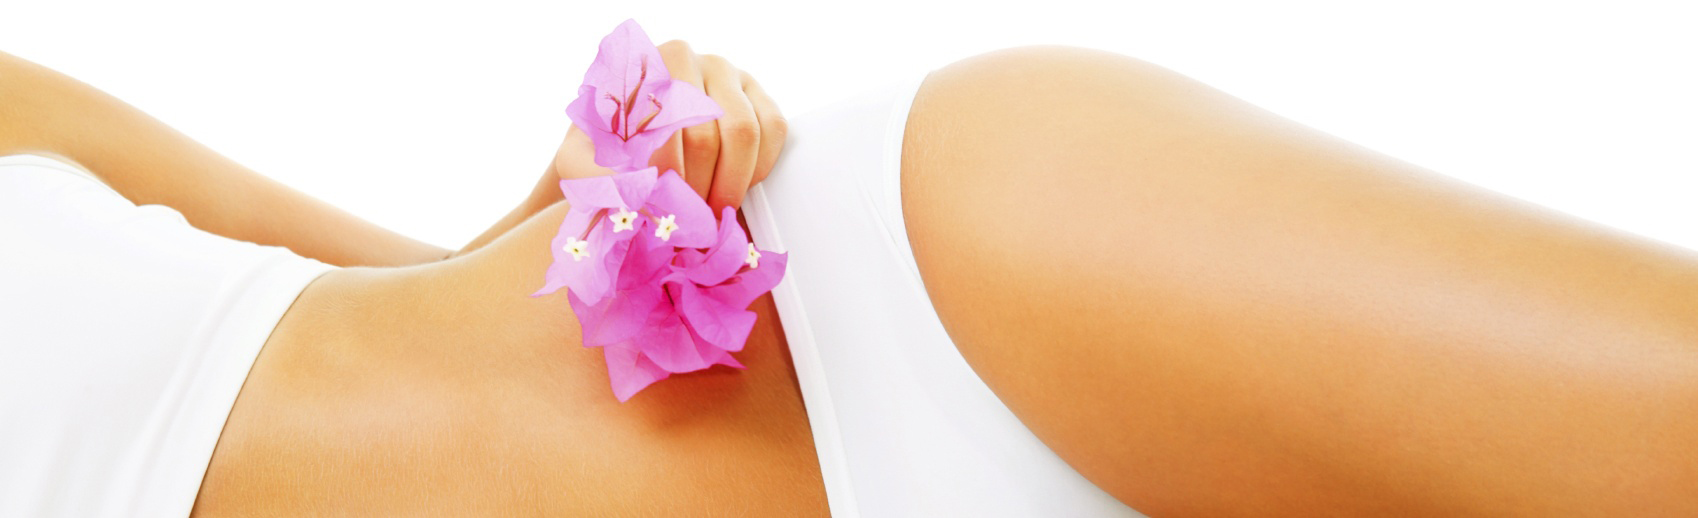 Body wax treatments by Beauty by Cindy